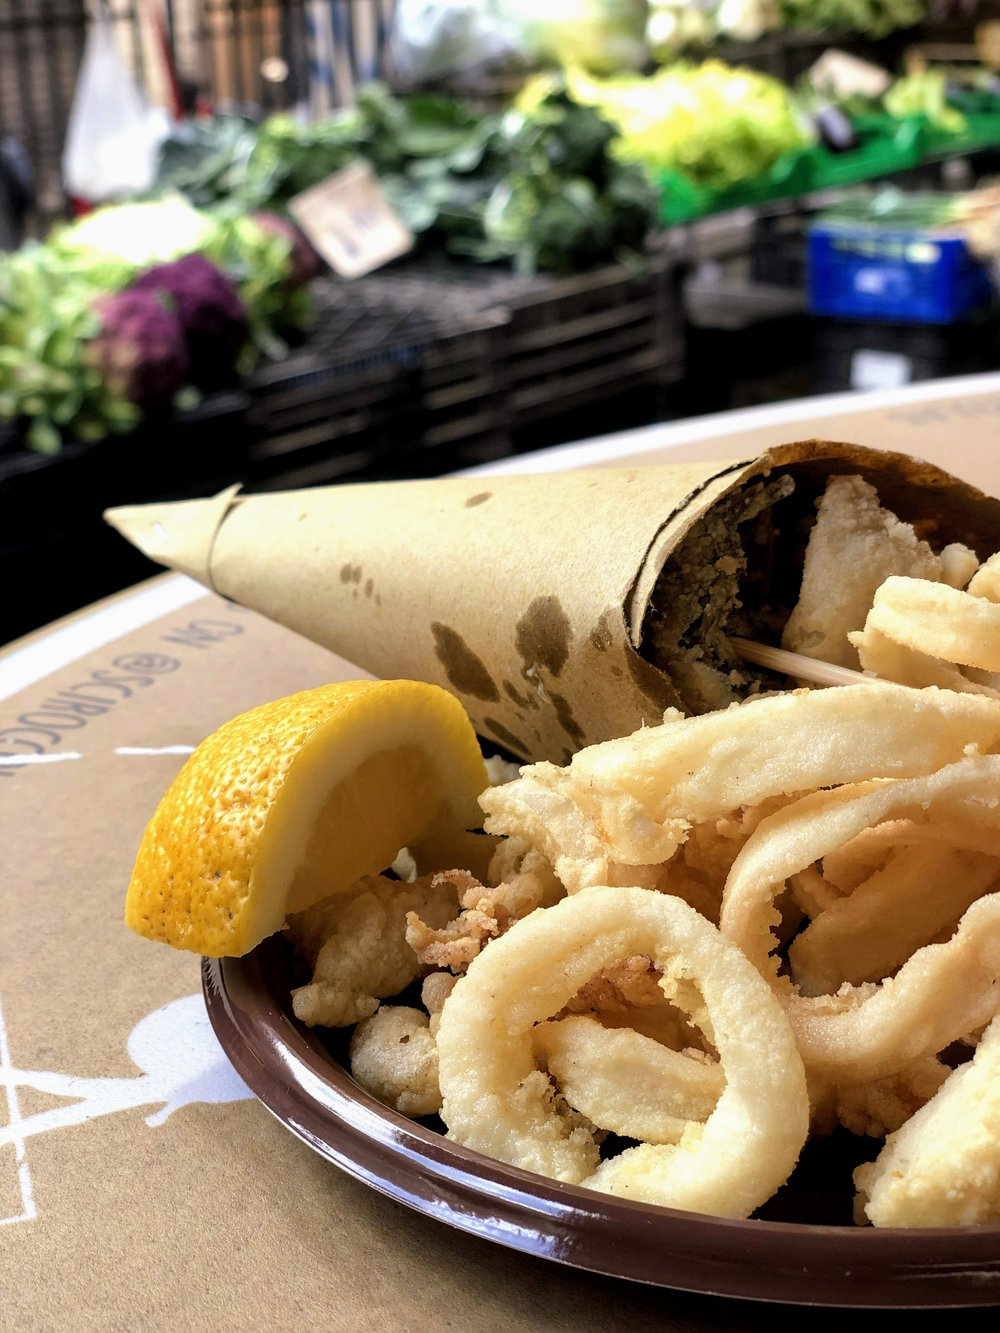 Seafood from Scirocco Sicilian Fish Lab in Catania, Sicily